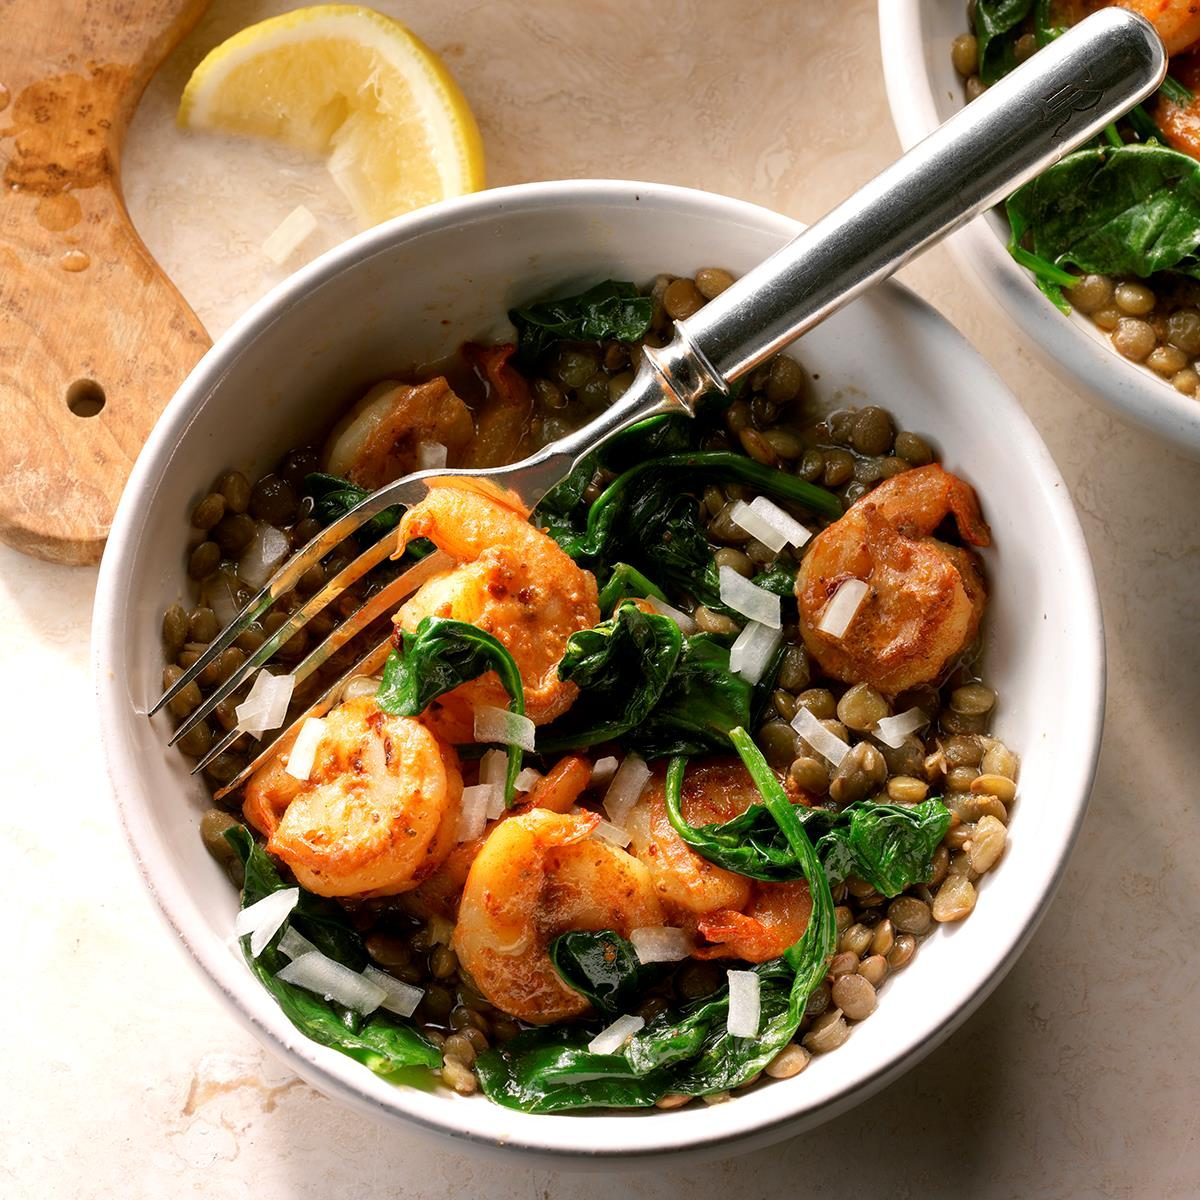 Day 27: East Coast Shrimp and Lentil Bowls